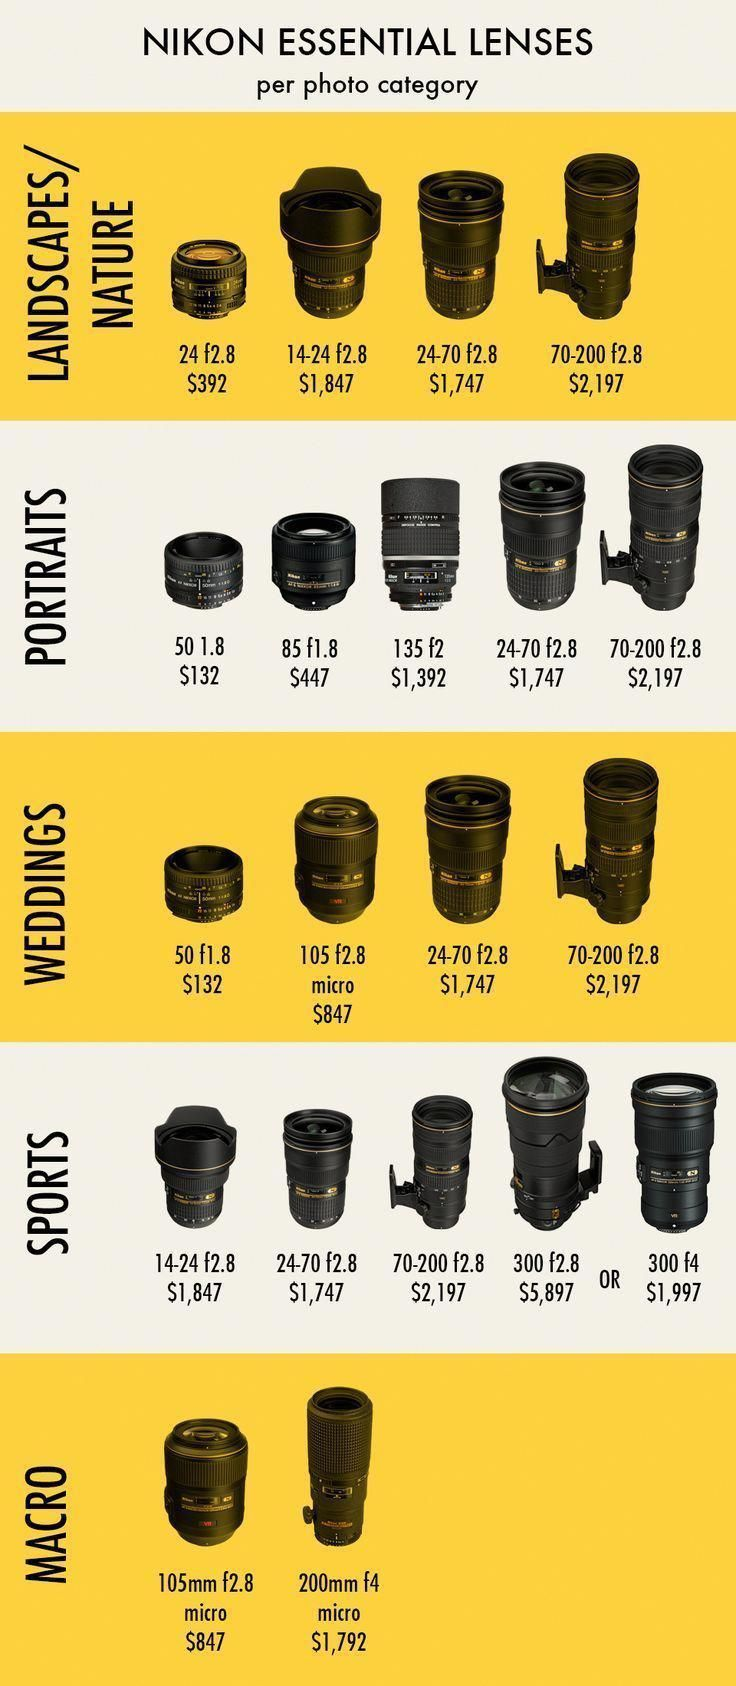 Nikon Camera Lens Diagram Trusted Wiring Diagrams Where To Get Parts For A D5000 Slr With Dx Vr Afs And Canon Price Comparison Digitalphotography Digital Tools